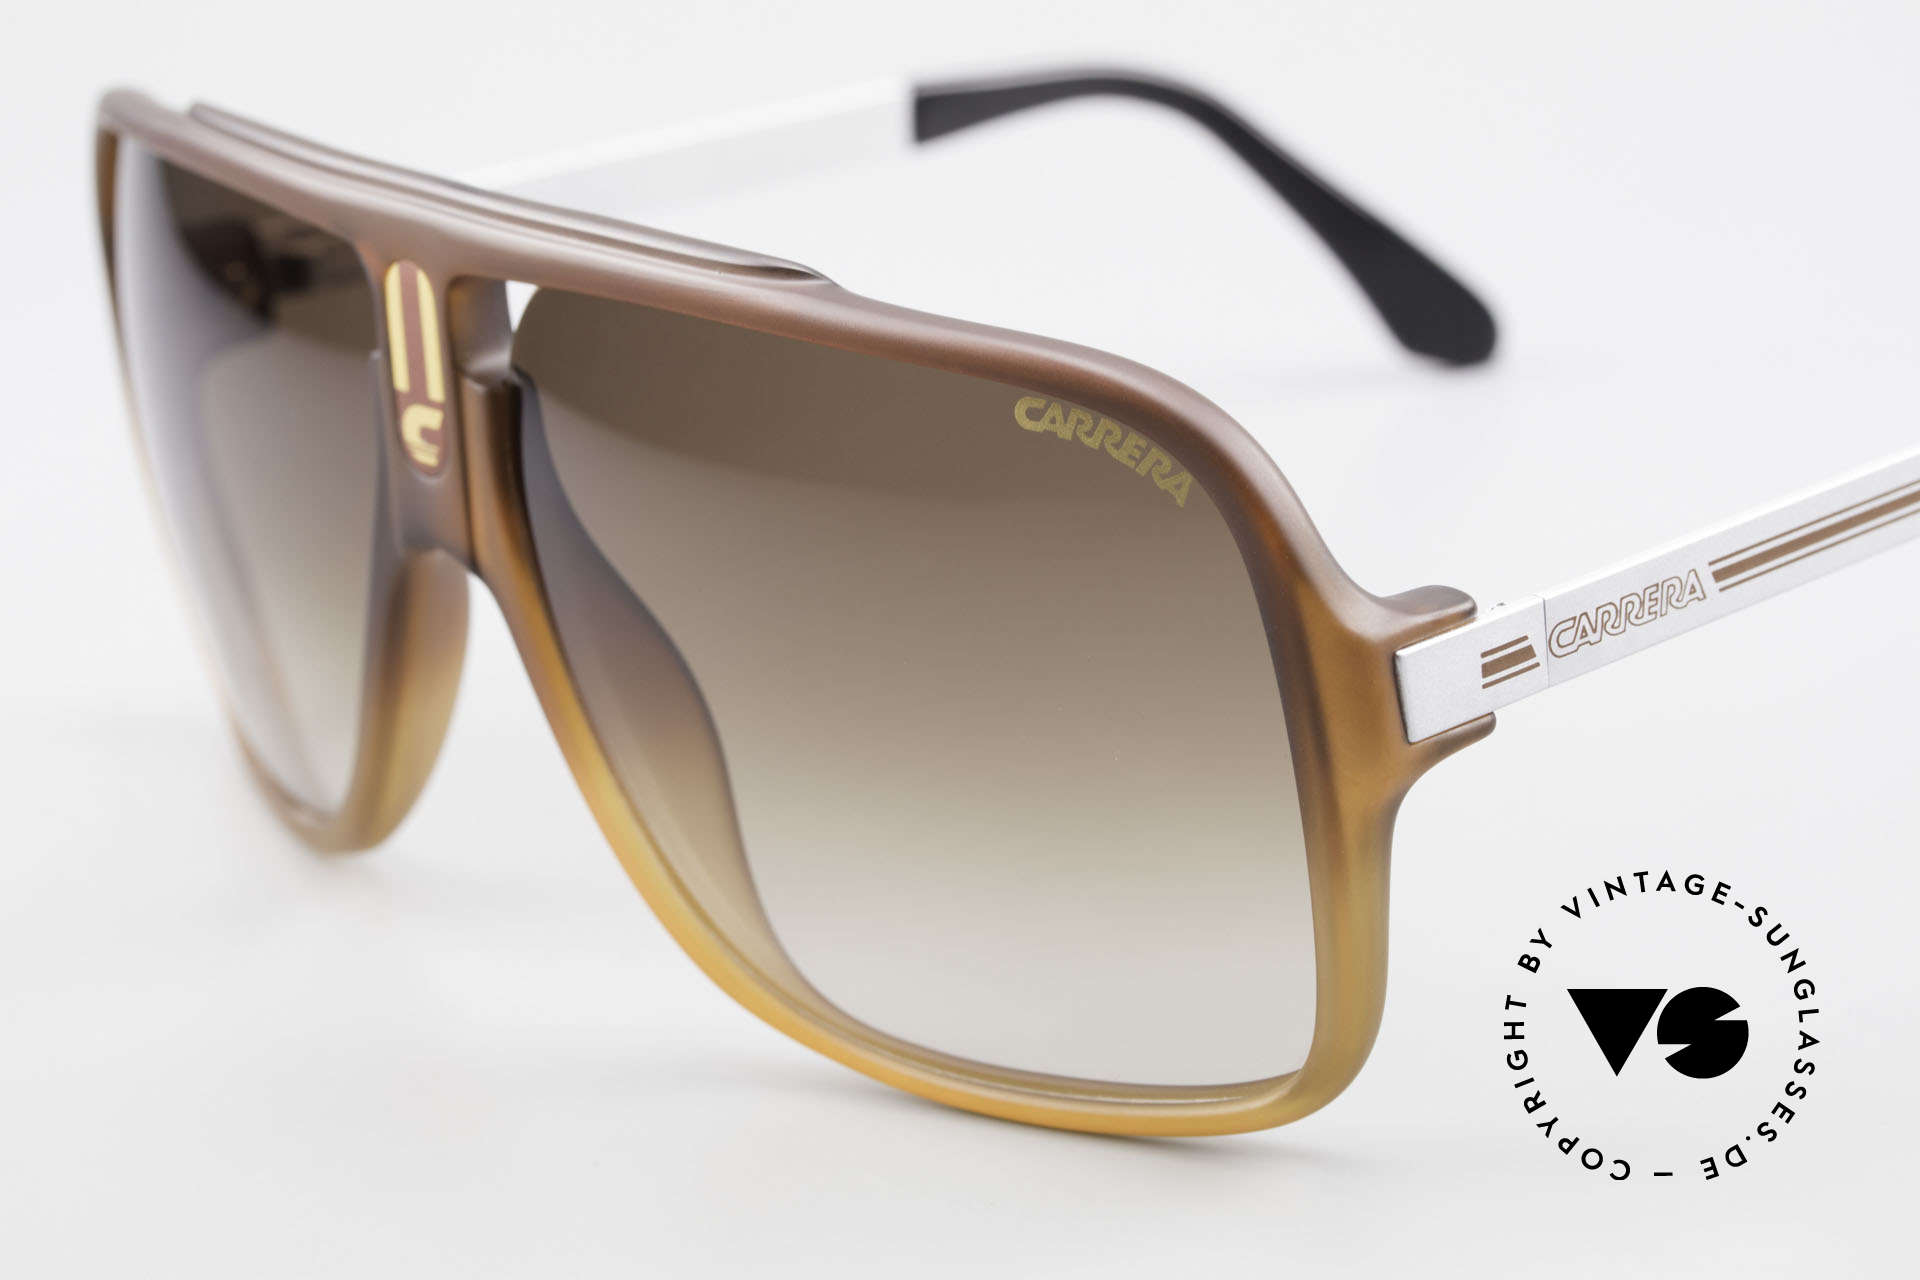 "Carrera 5557 Rare Vintage Shades No Retro, orig. catalog name in the 80's was ""model 5557 Monza"", Made for Men"